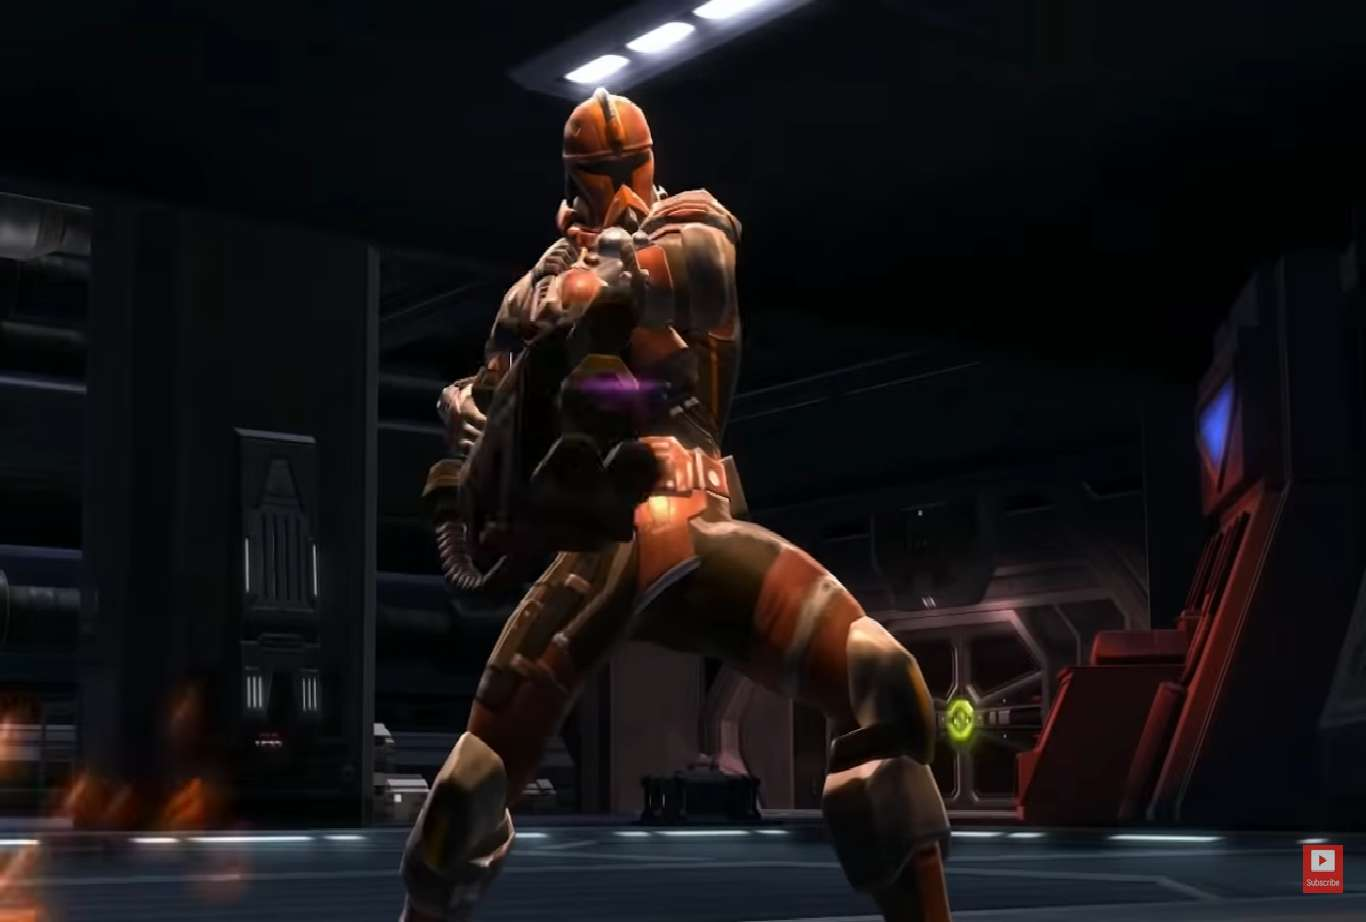 Tacticals Make Commandos And Mercenaries More Potent Healers And DPS In Star Wars The Old Republic